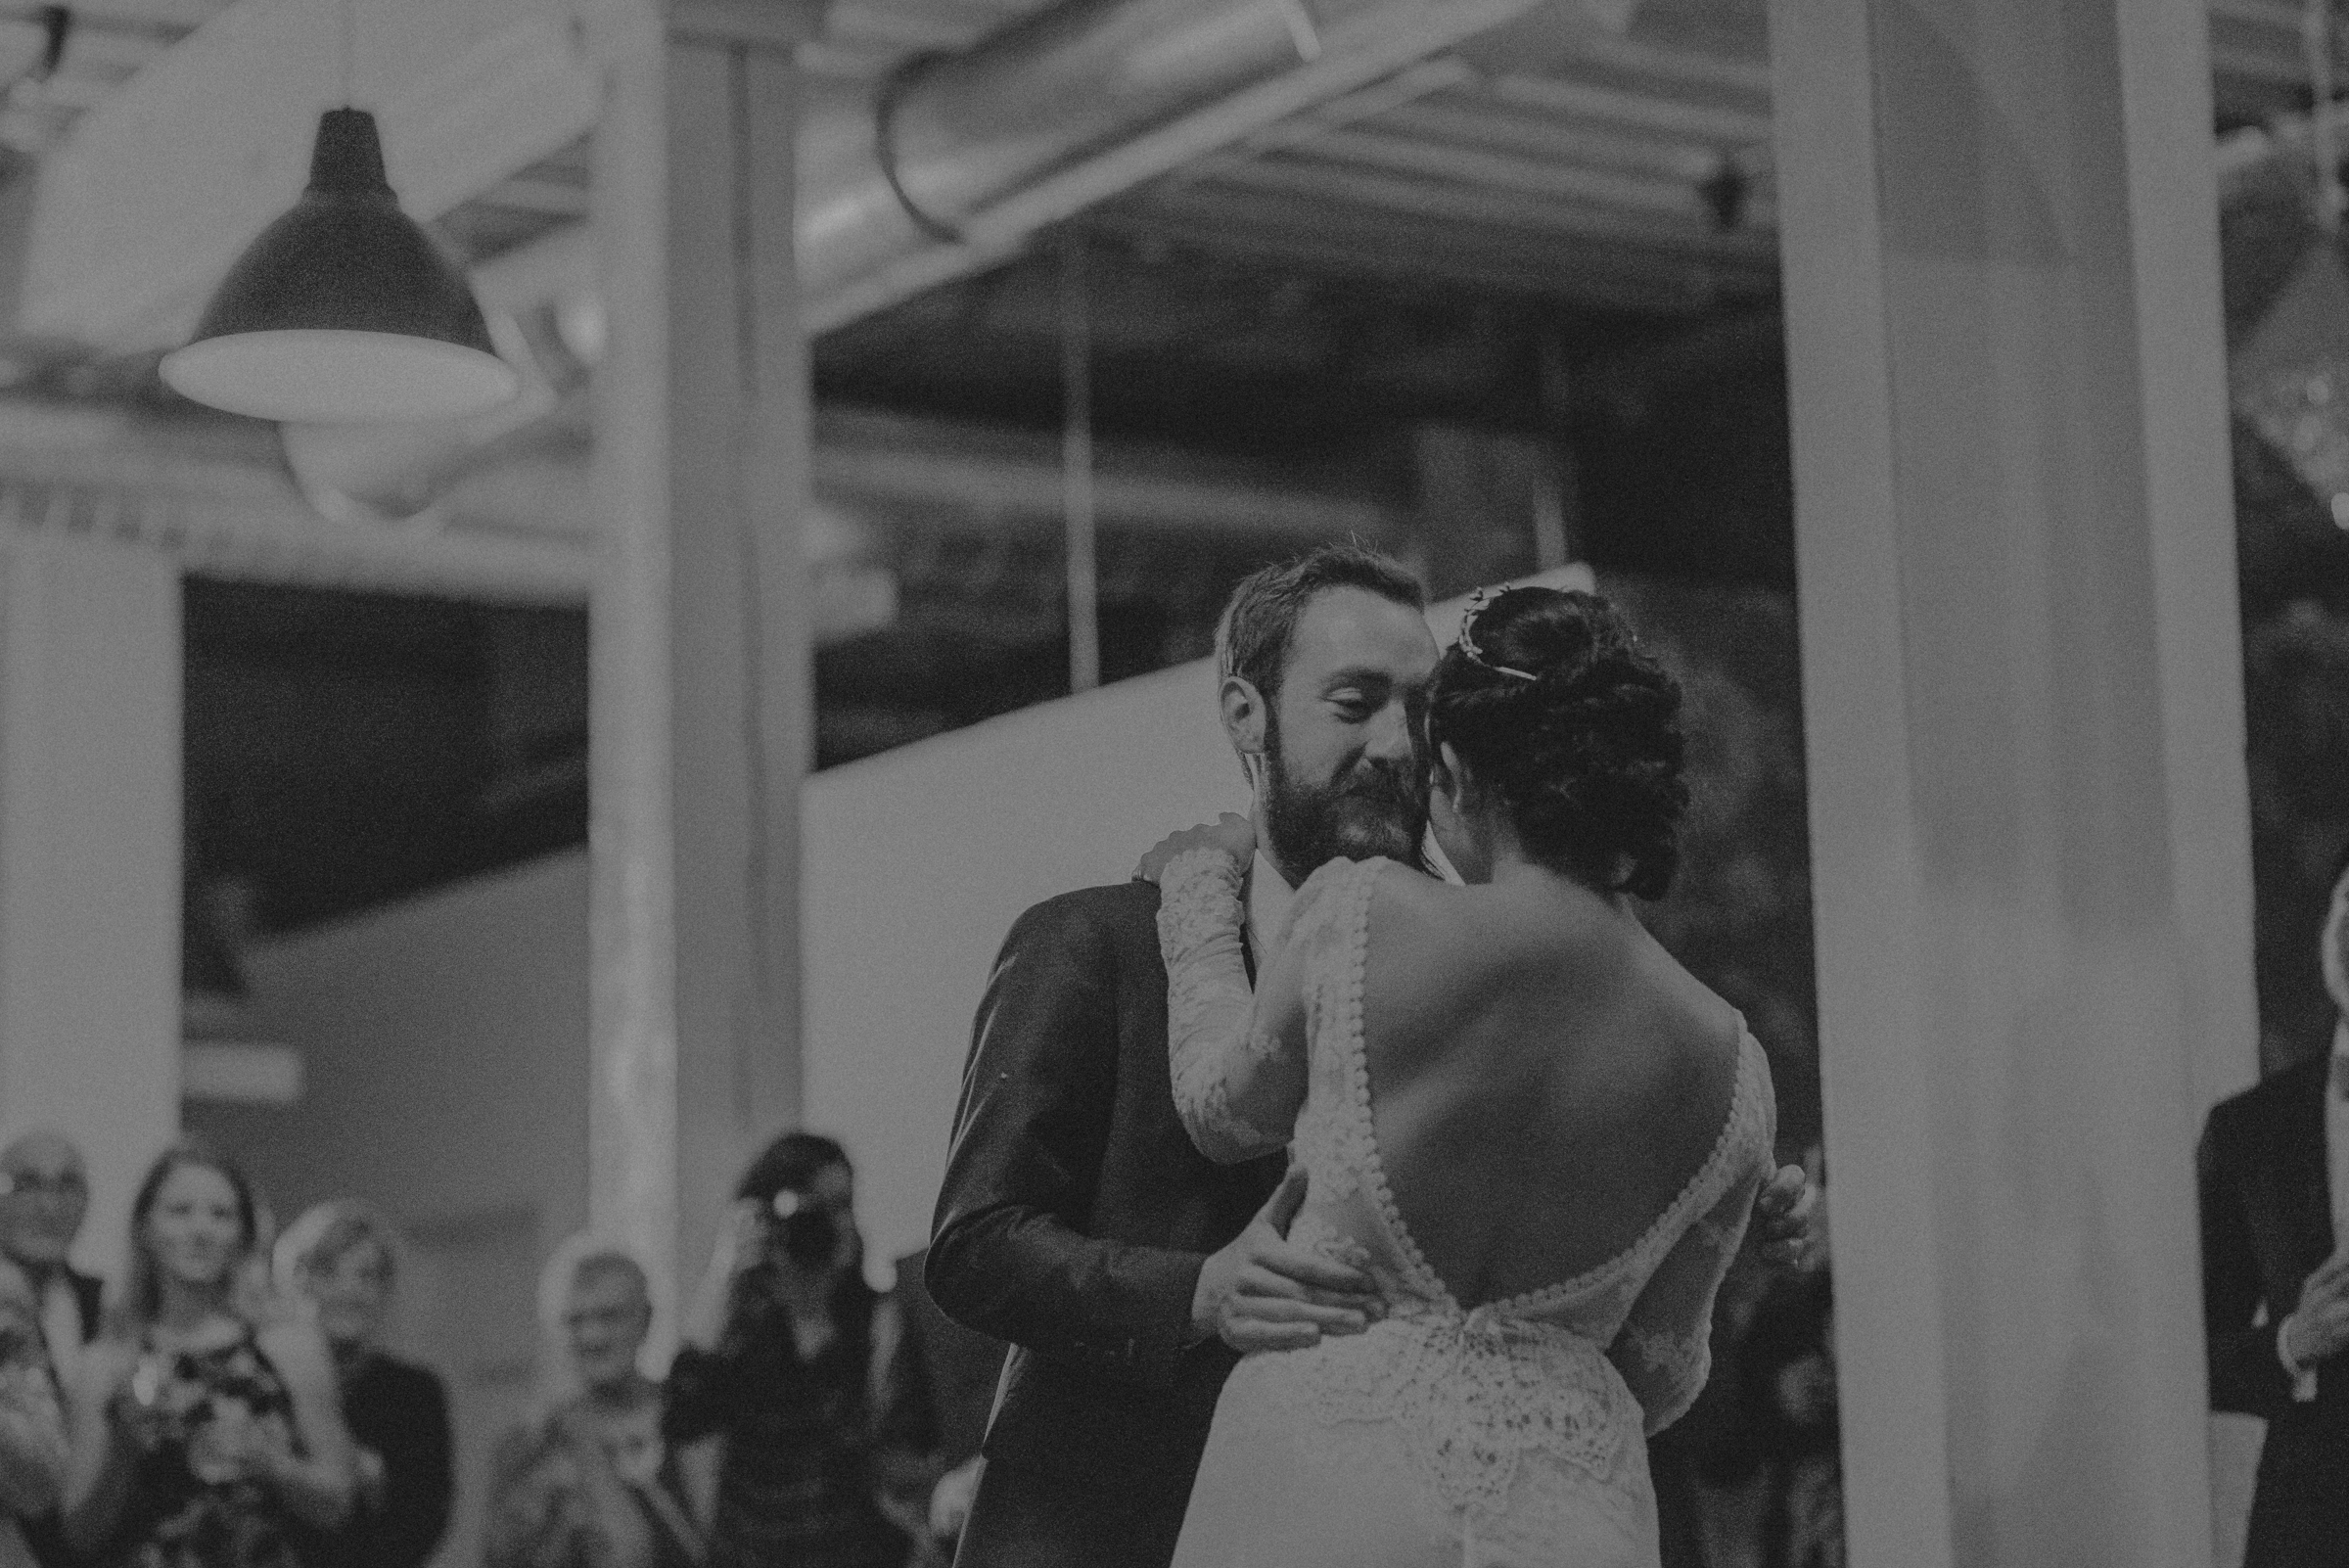 Isaiah + Taylor Photography - The Unique Space Wedding, Los Angeles Wedding Photography 153.jpg